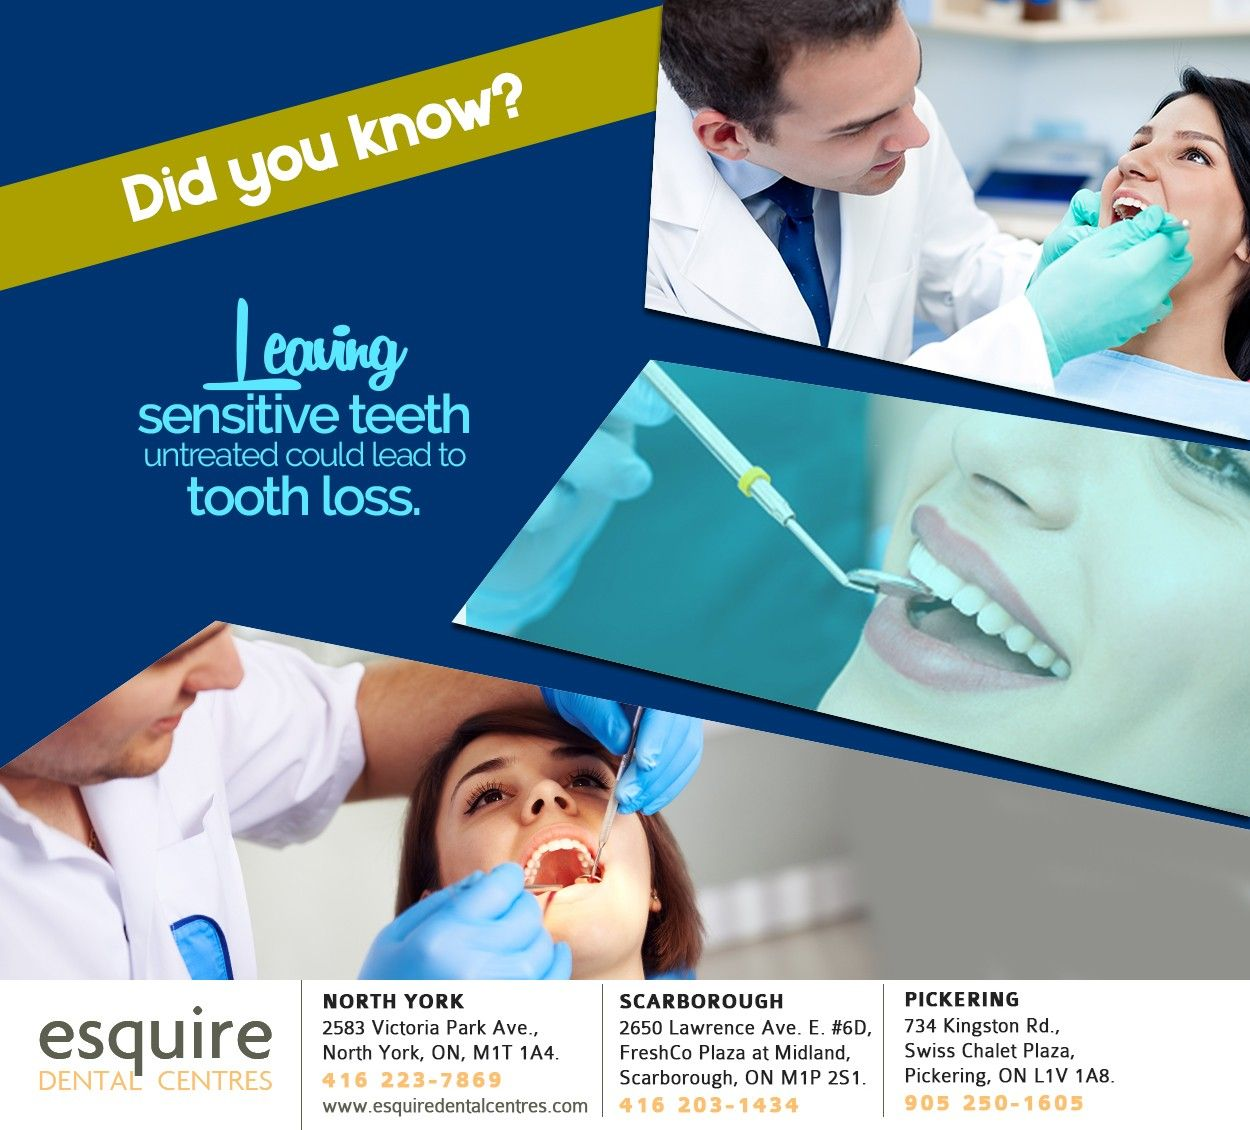 Your teeth may be sensitive as a result of gum recession